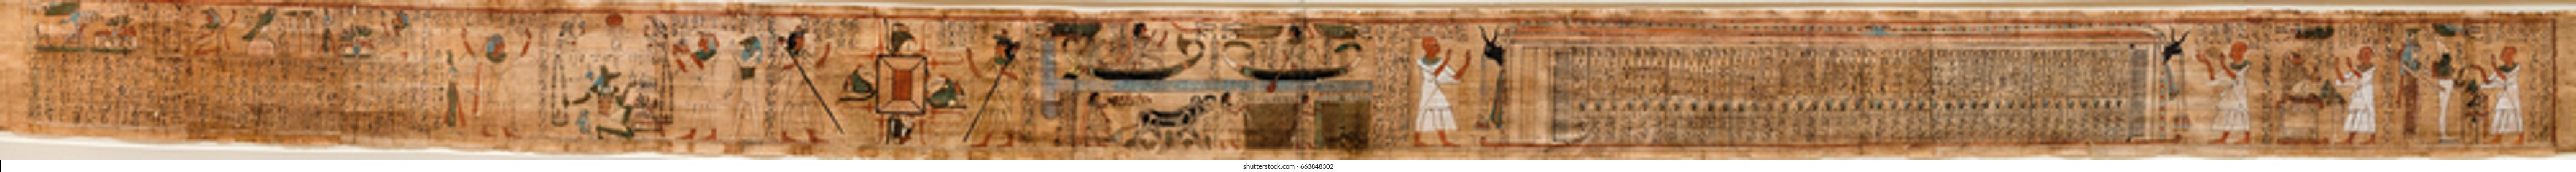 Imy Duat old ancient egyptian book of dead netherworld death